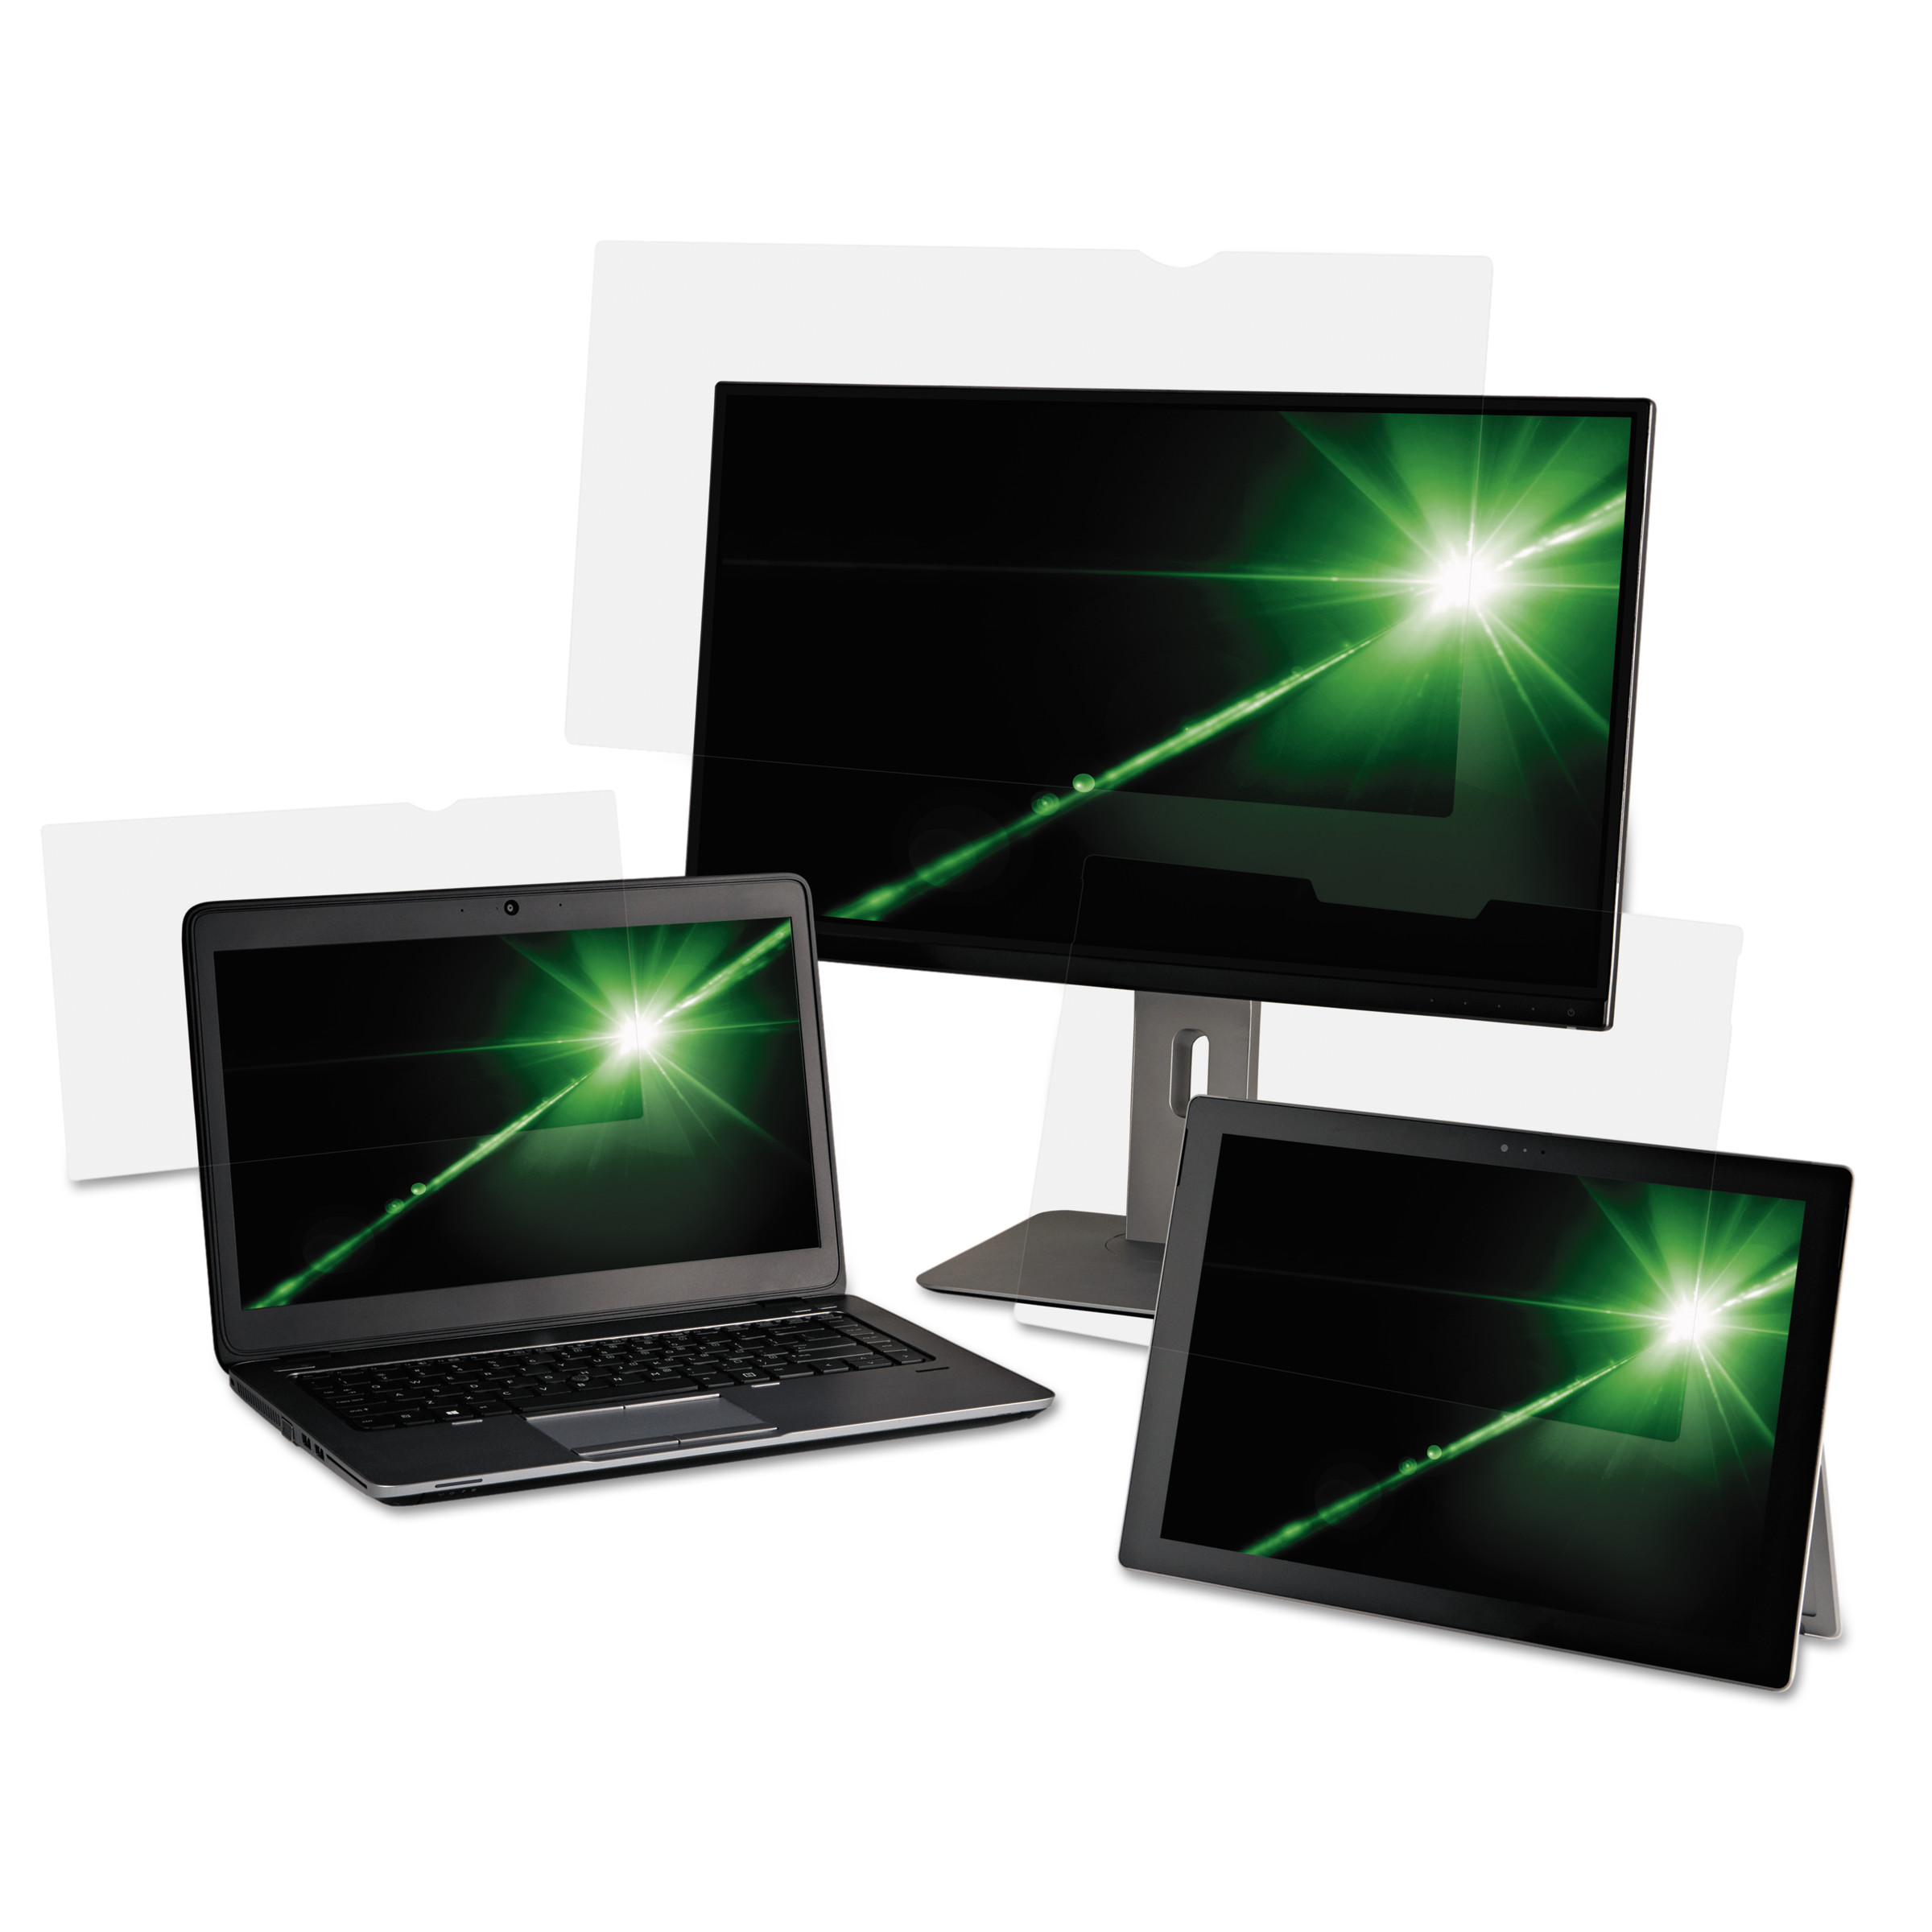 "3M Antiglare Flatscreen Frameless Monitor Filters for 19"" Widescreen LCD, 16:10"